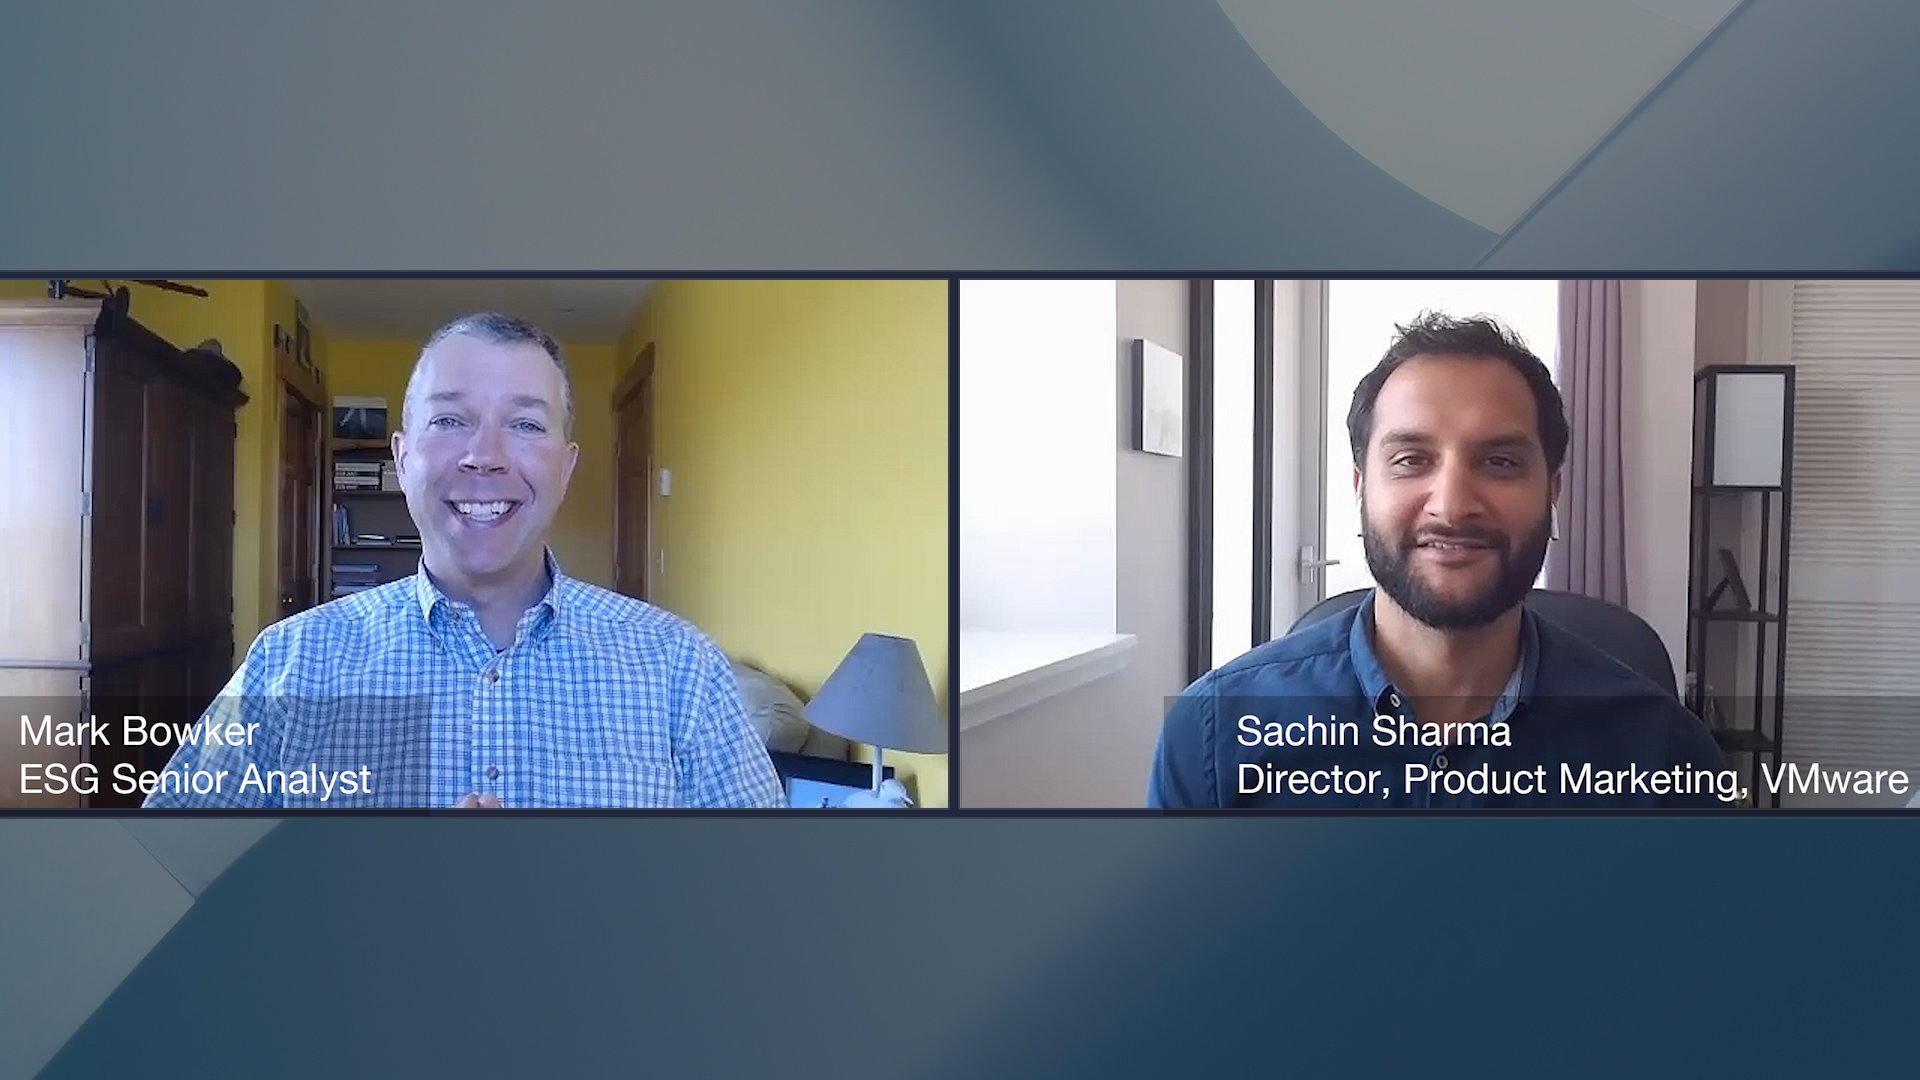 Enabling Remote Work Video with Sachin Sharma, Director, Product Marketing, VMware